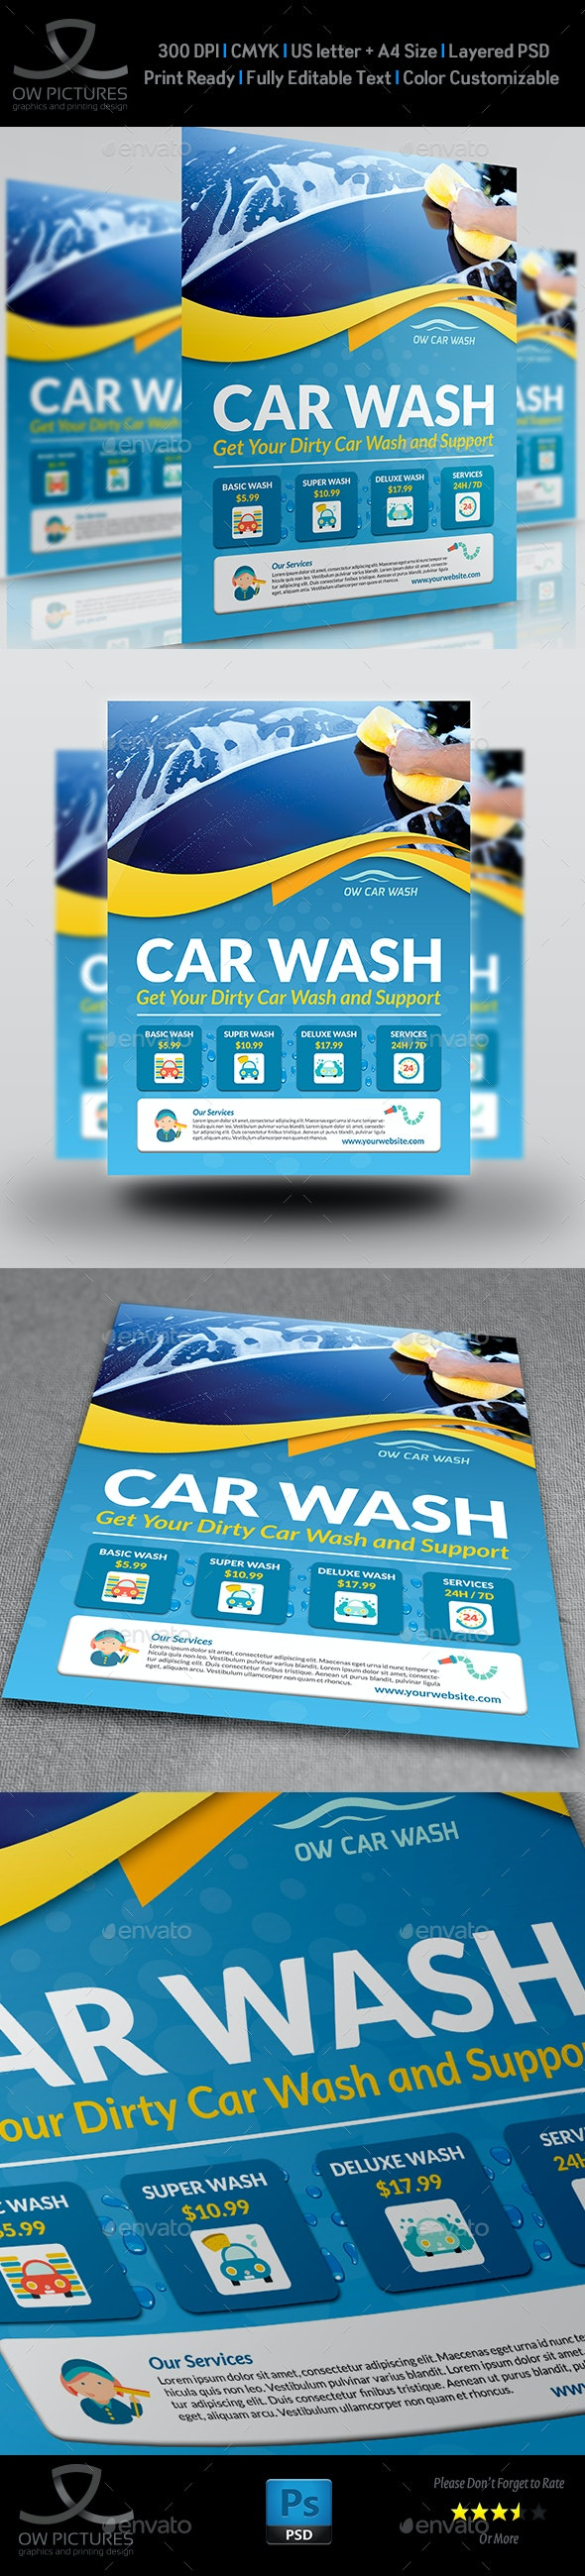 Car Wash Flyer Templates - Flyers Print Templates